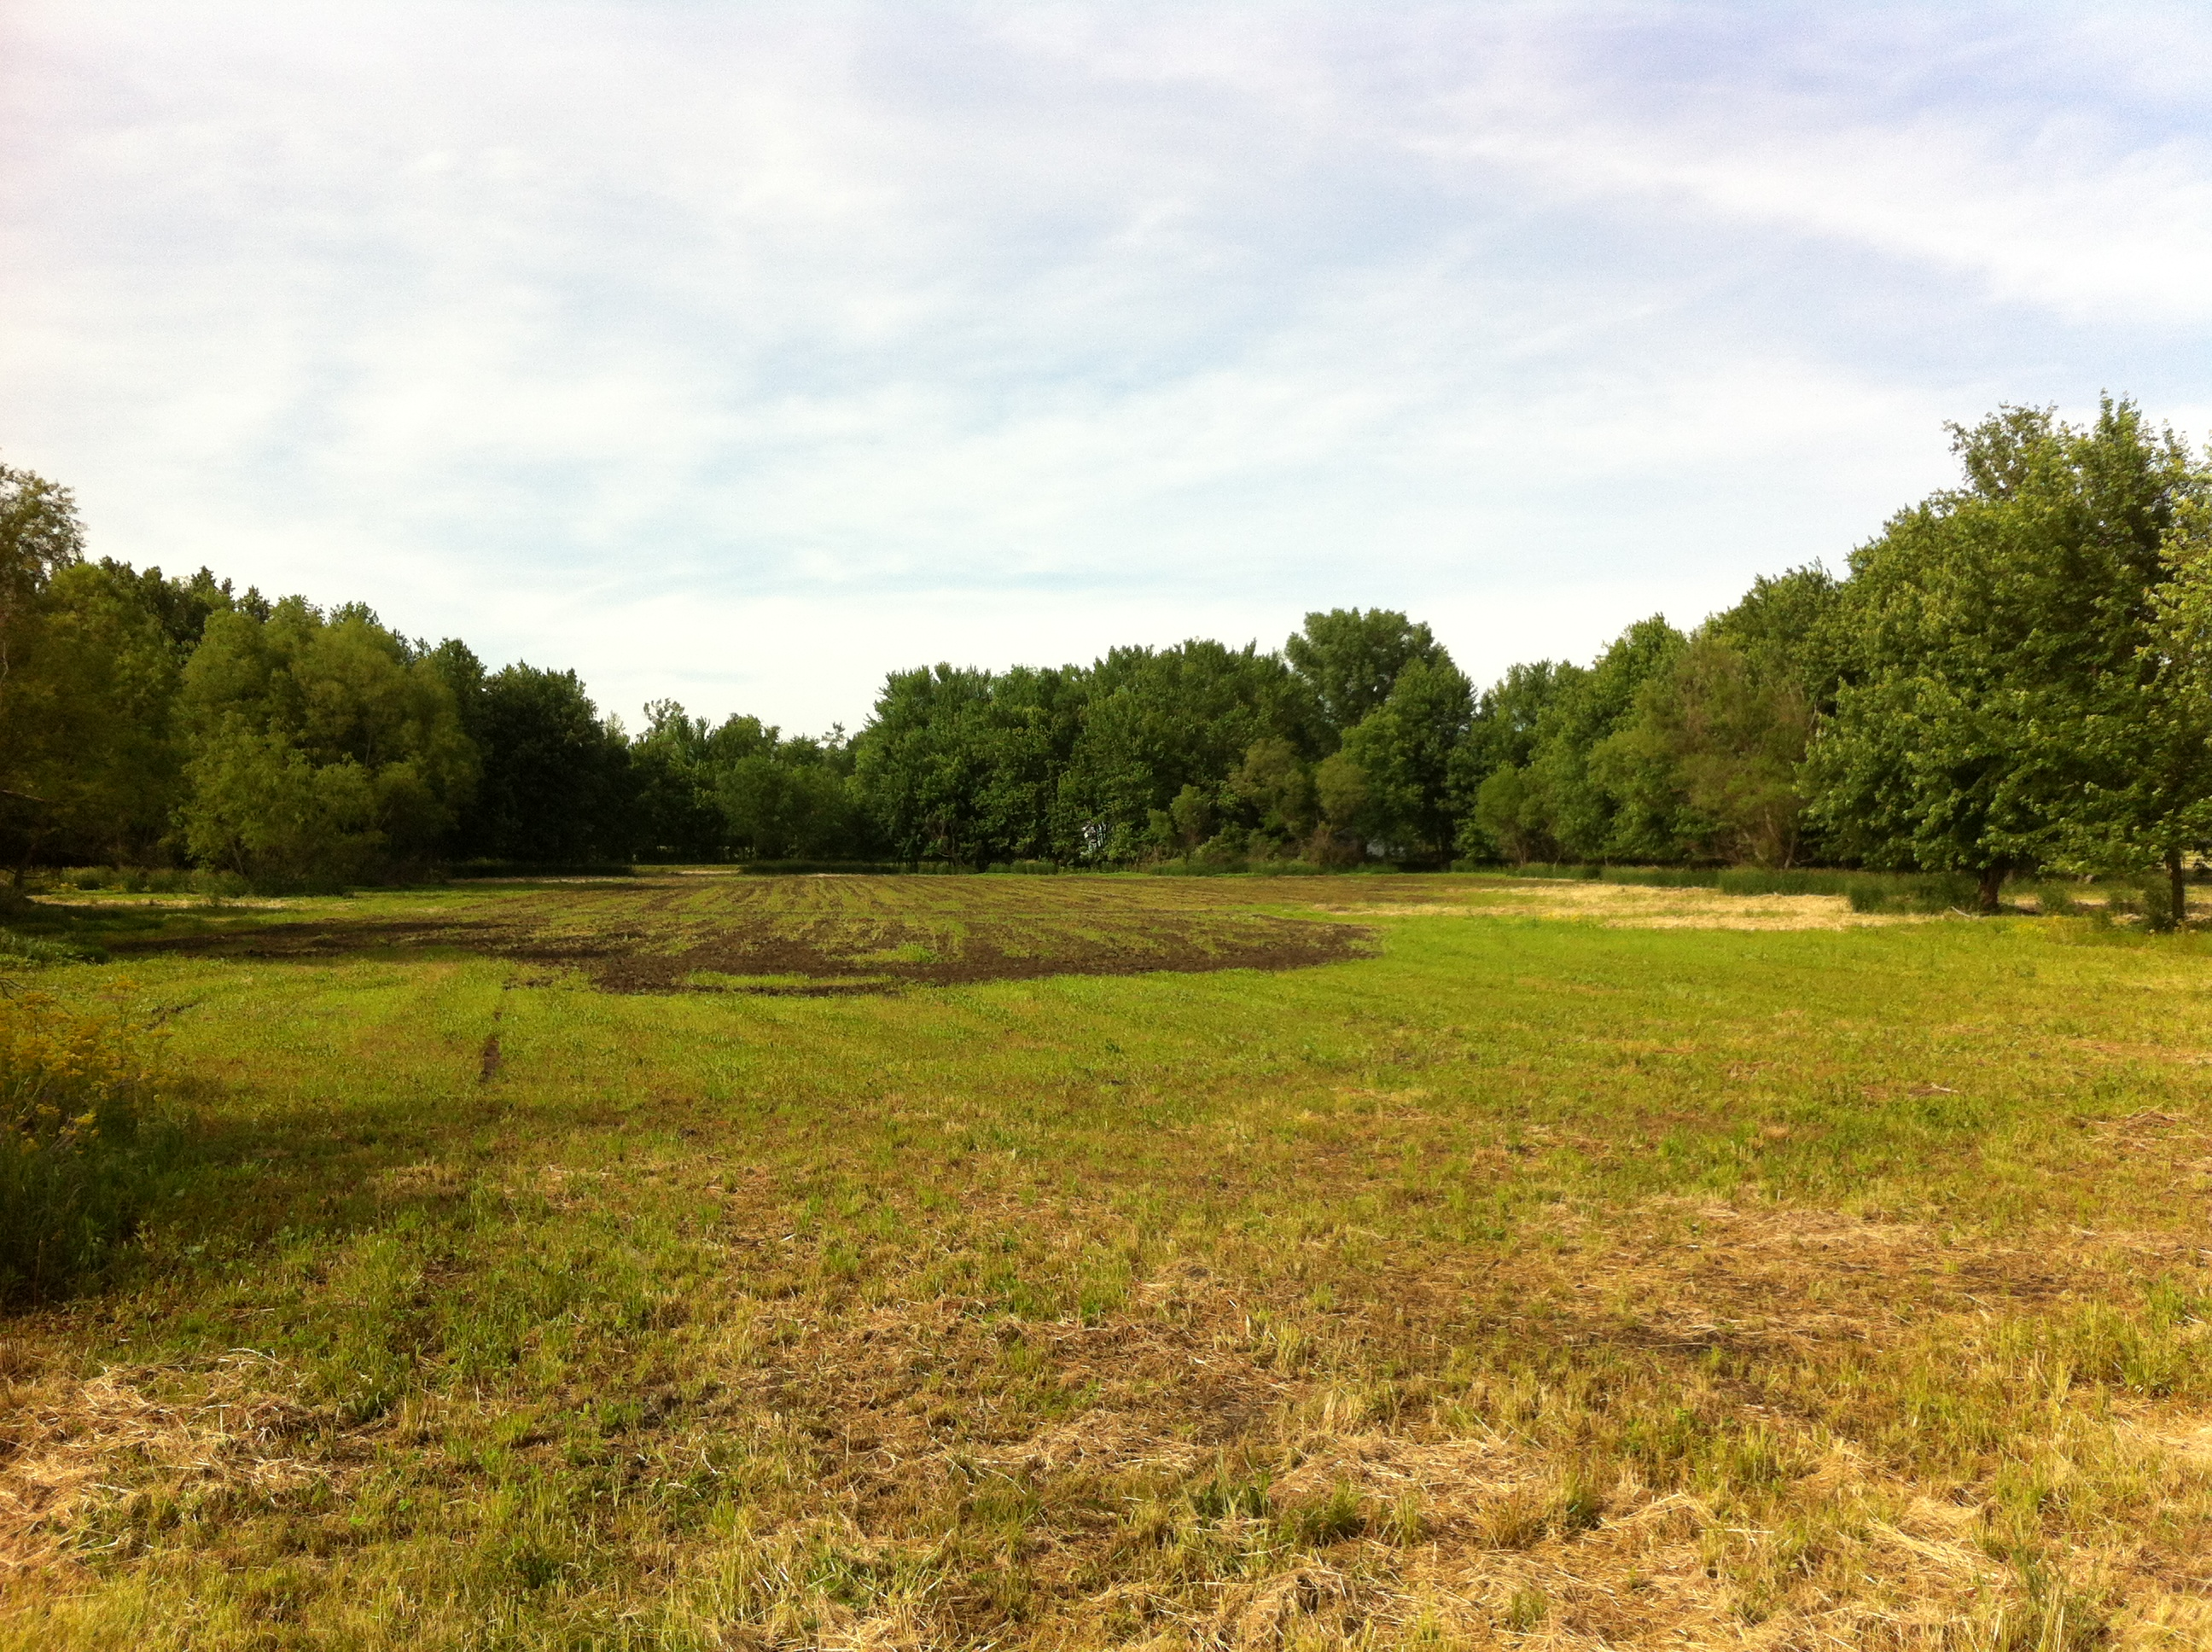 West Lafayette wooded acreage with meadow pasture 20.5 acres minutes to Purdue Research Park Harrison High School